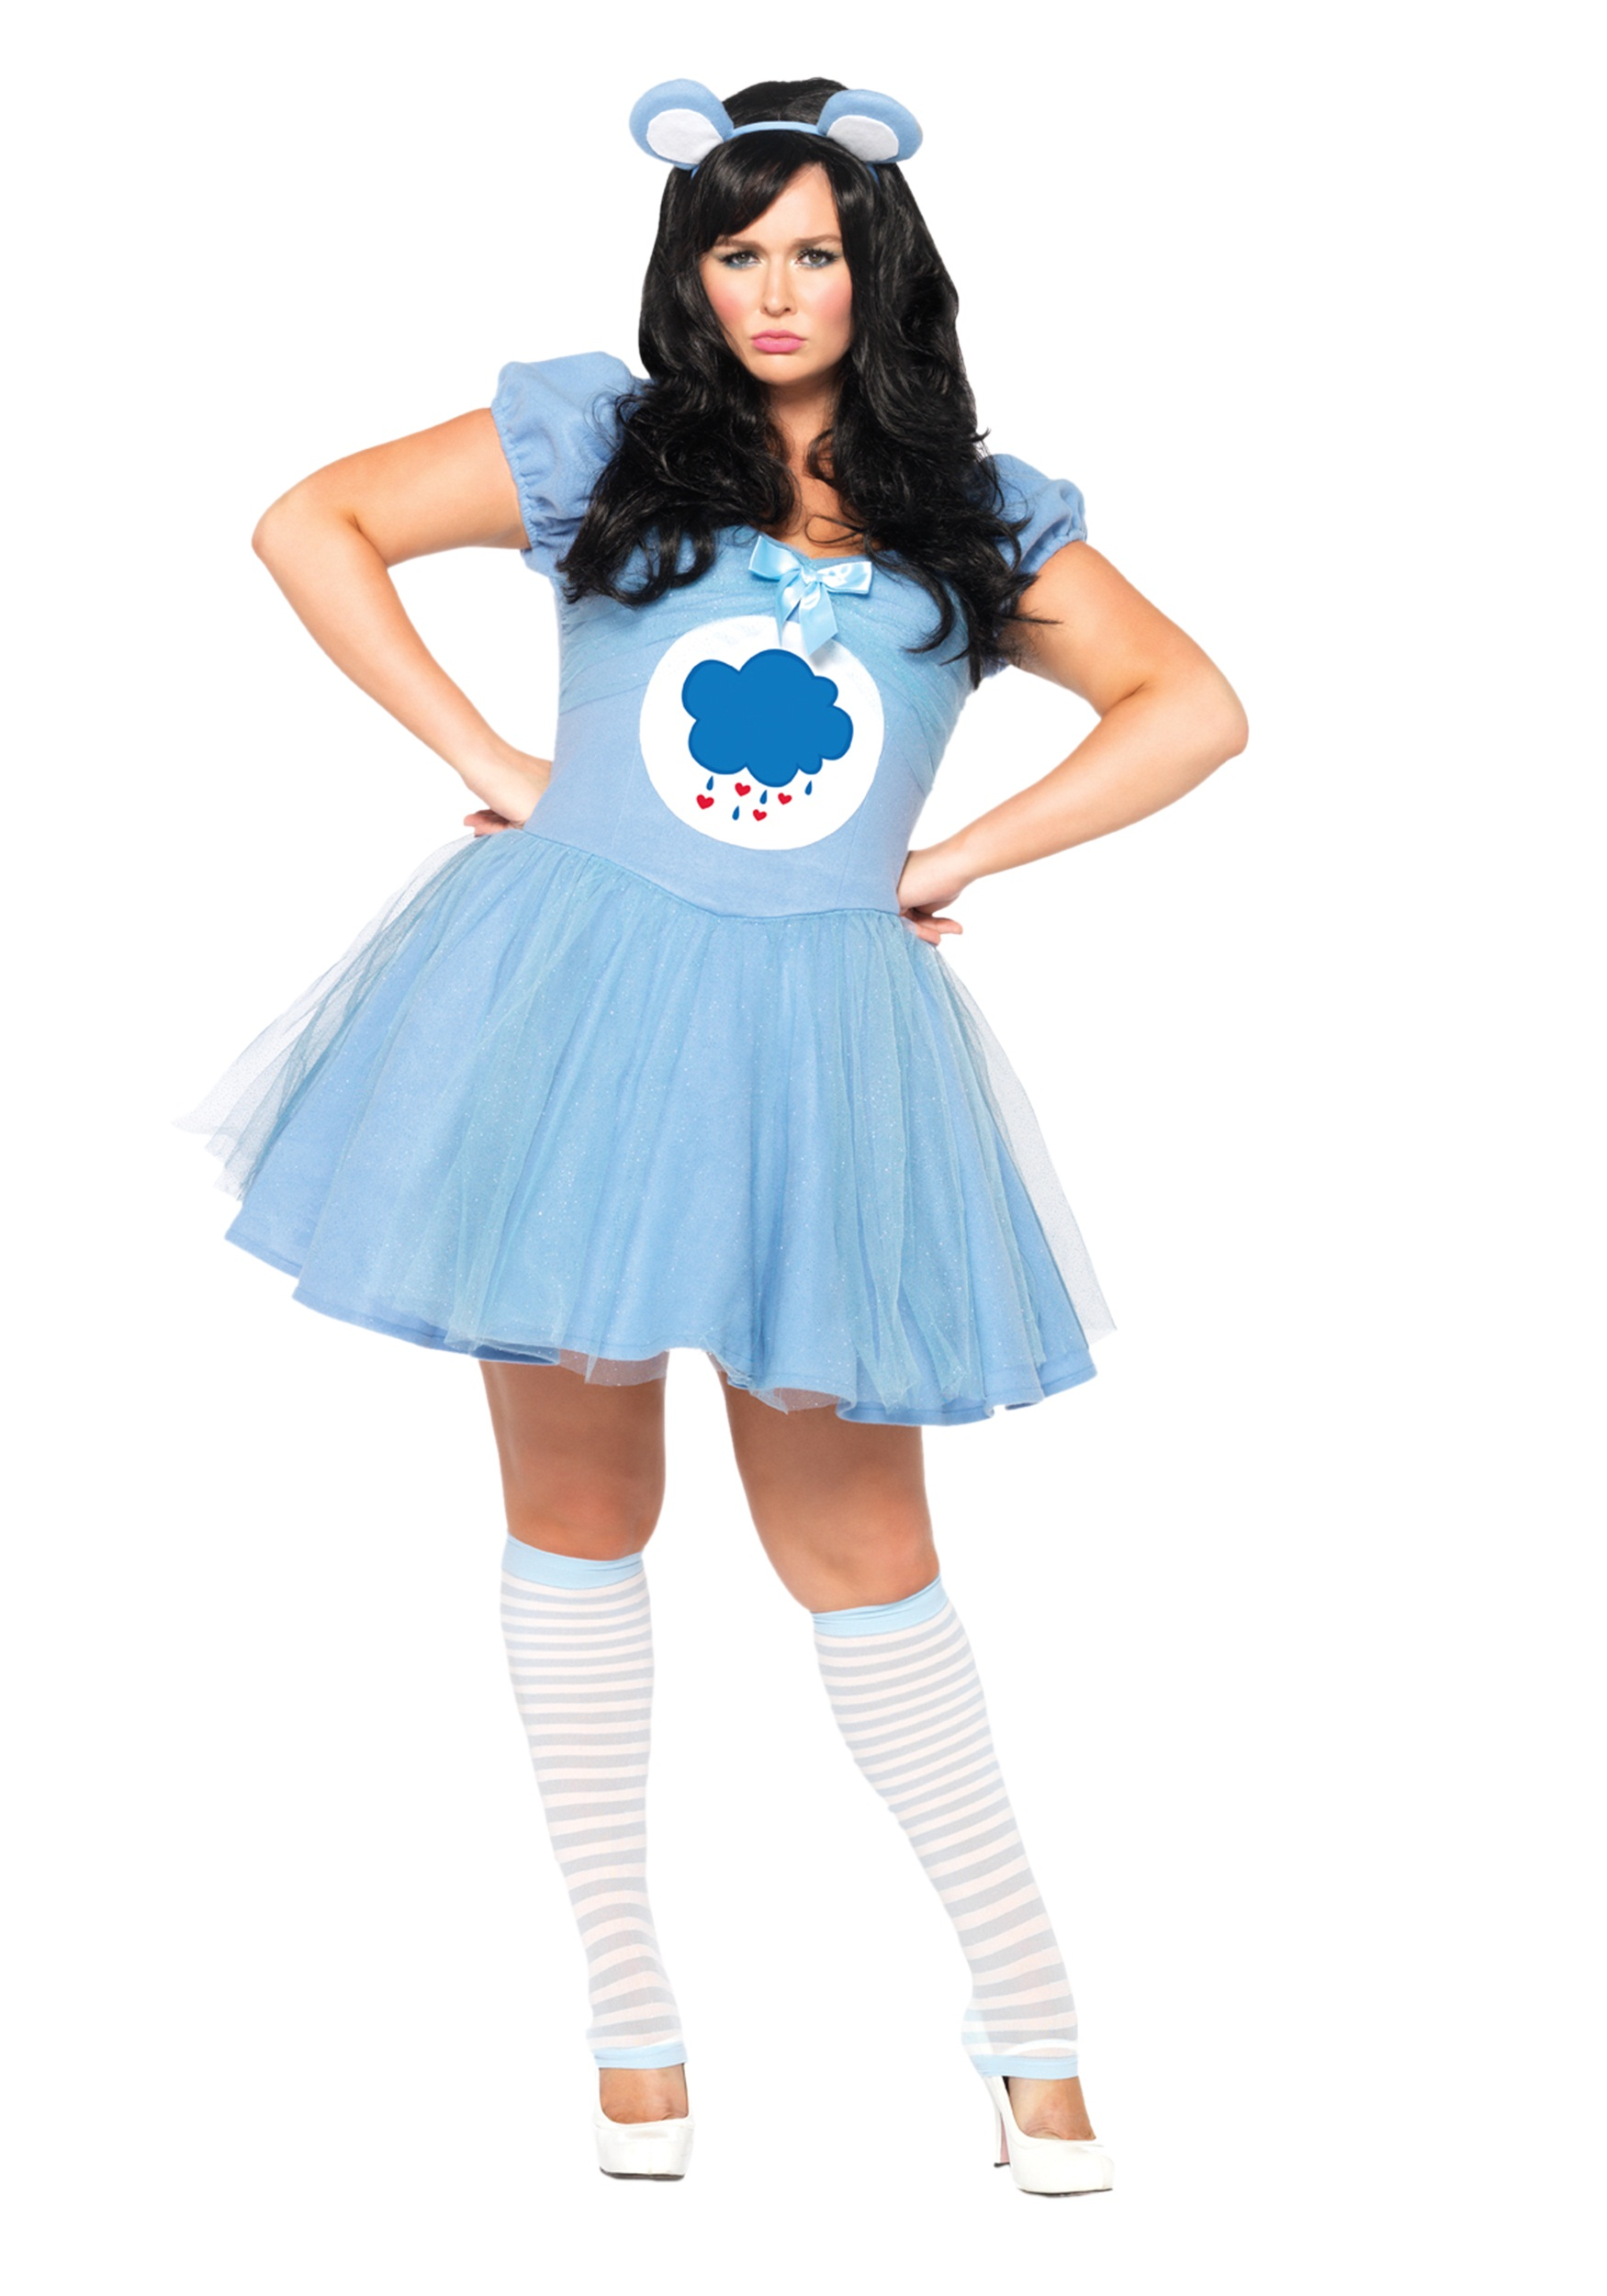 Plus Size Care Bears Grumpy Bear Costume  sc 1 st  Halloween Costumes & Plus Size Care Bears Grumpy Bear Costume - Halloween Costumes